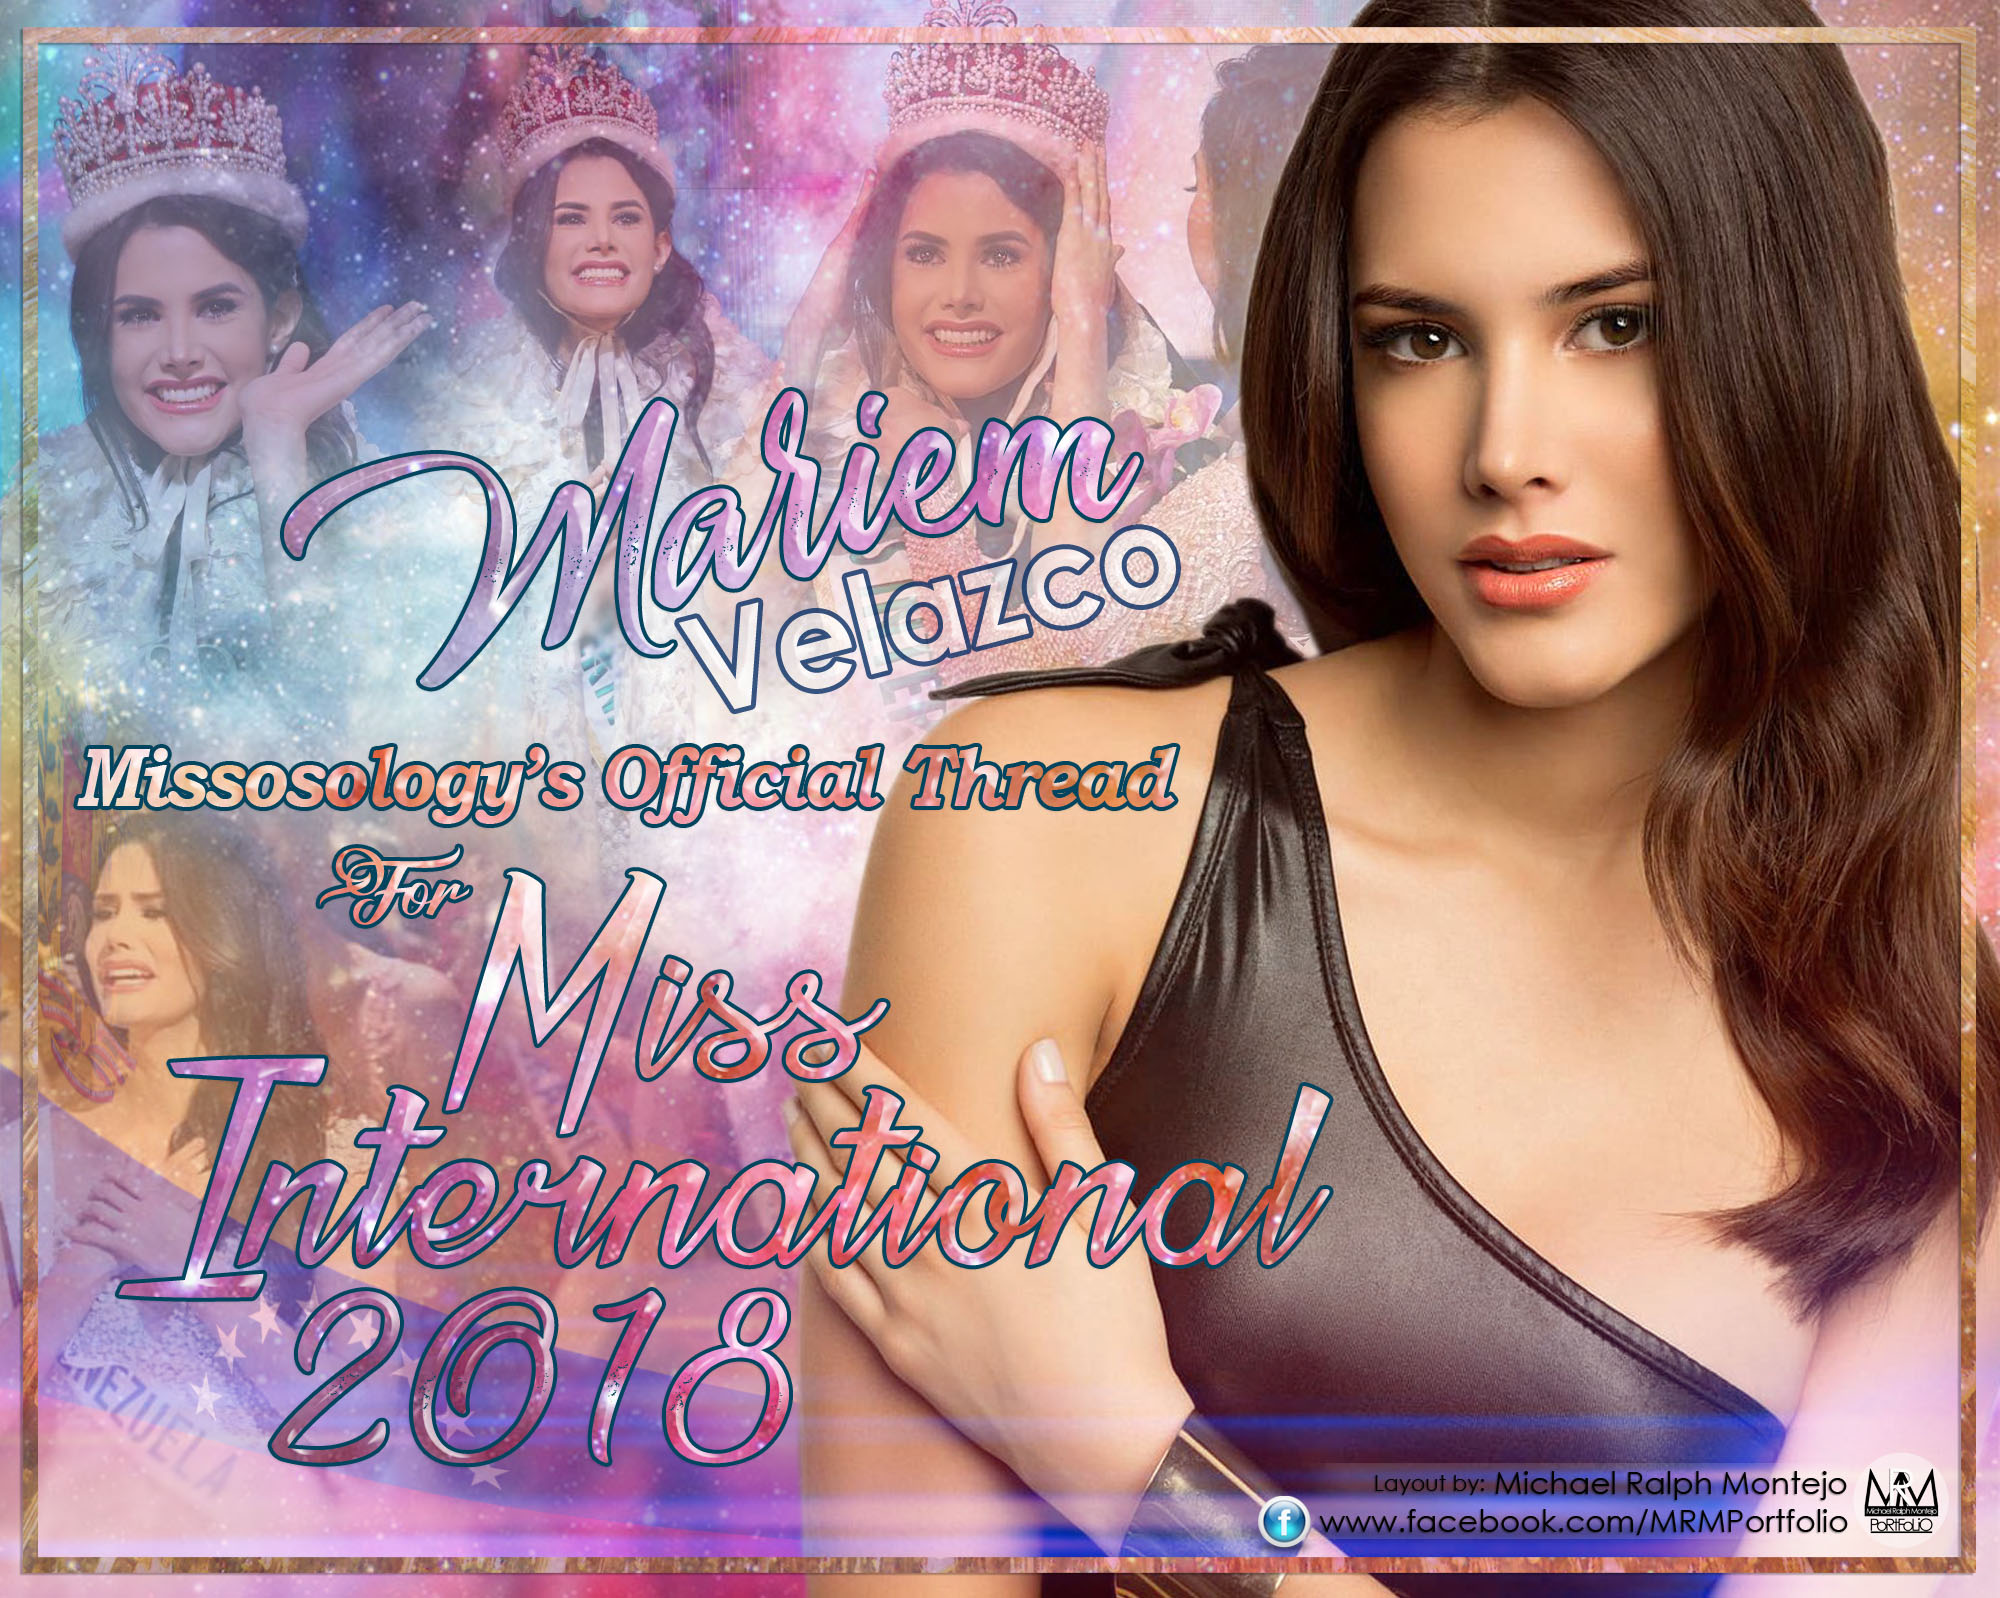 Miss International 2018, Mariem Velazco